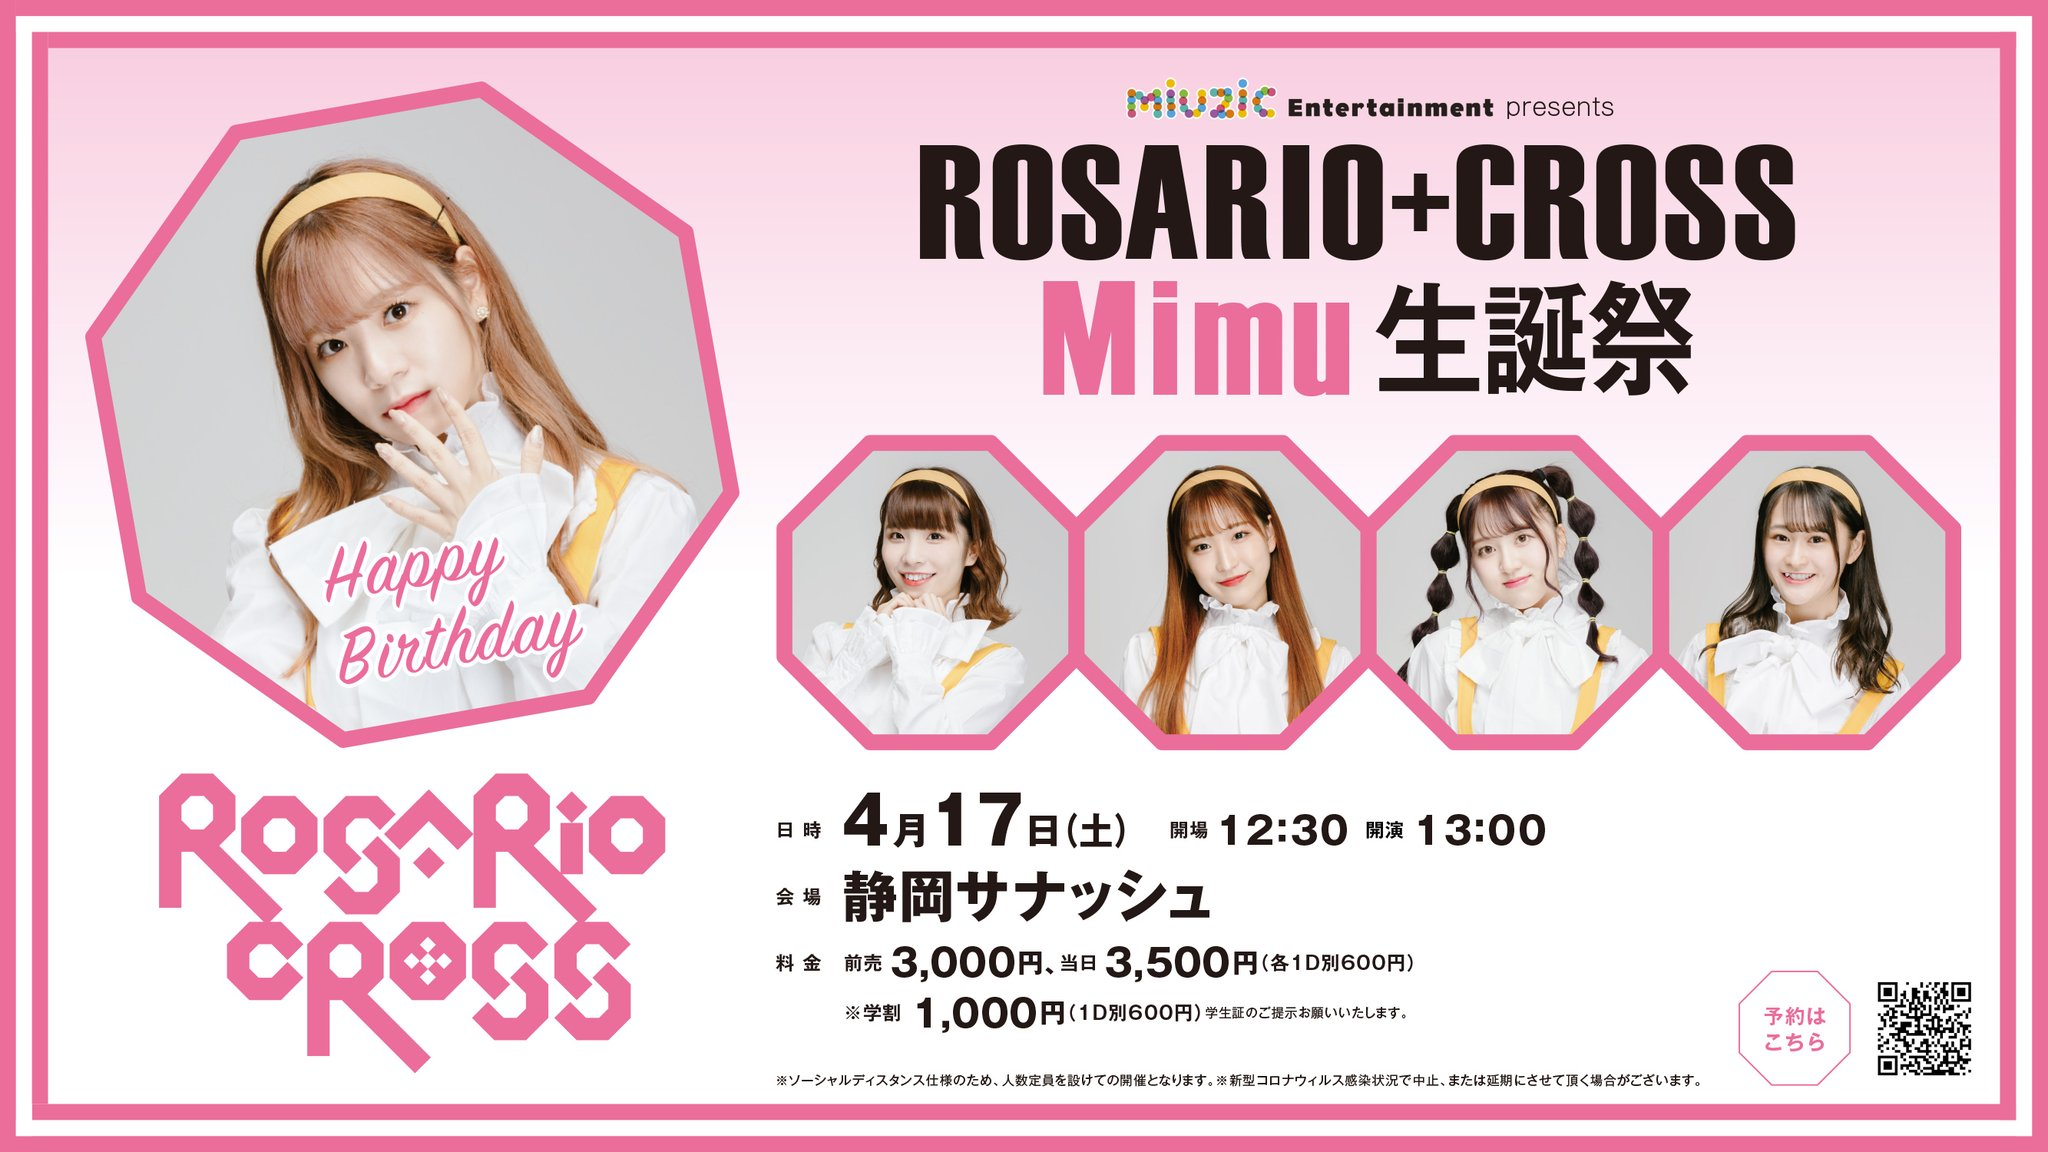 4/17(土)【ROSARIO+CROSS】昼公演「ROSARIO+CROSS Mimu生誕祭」